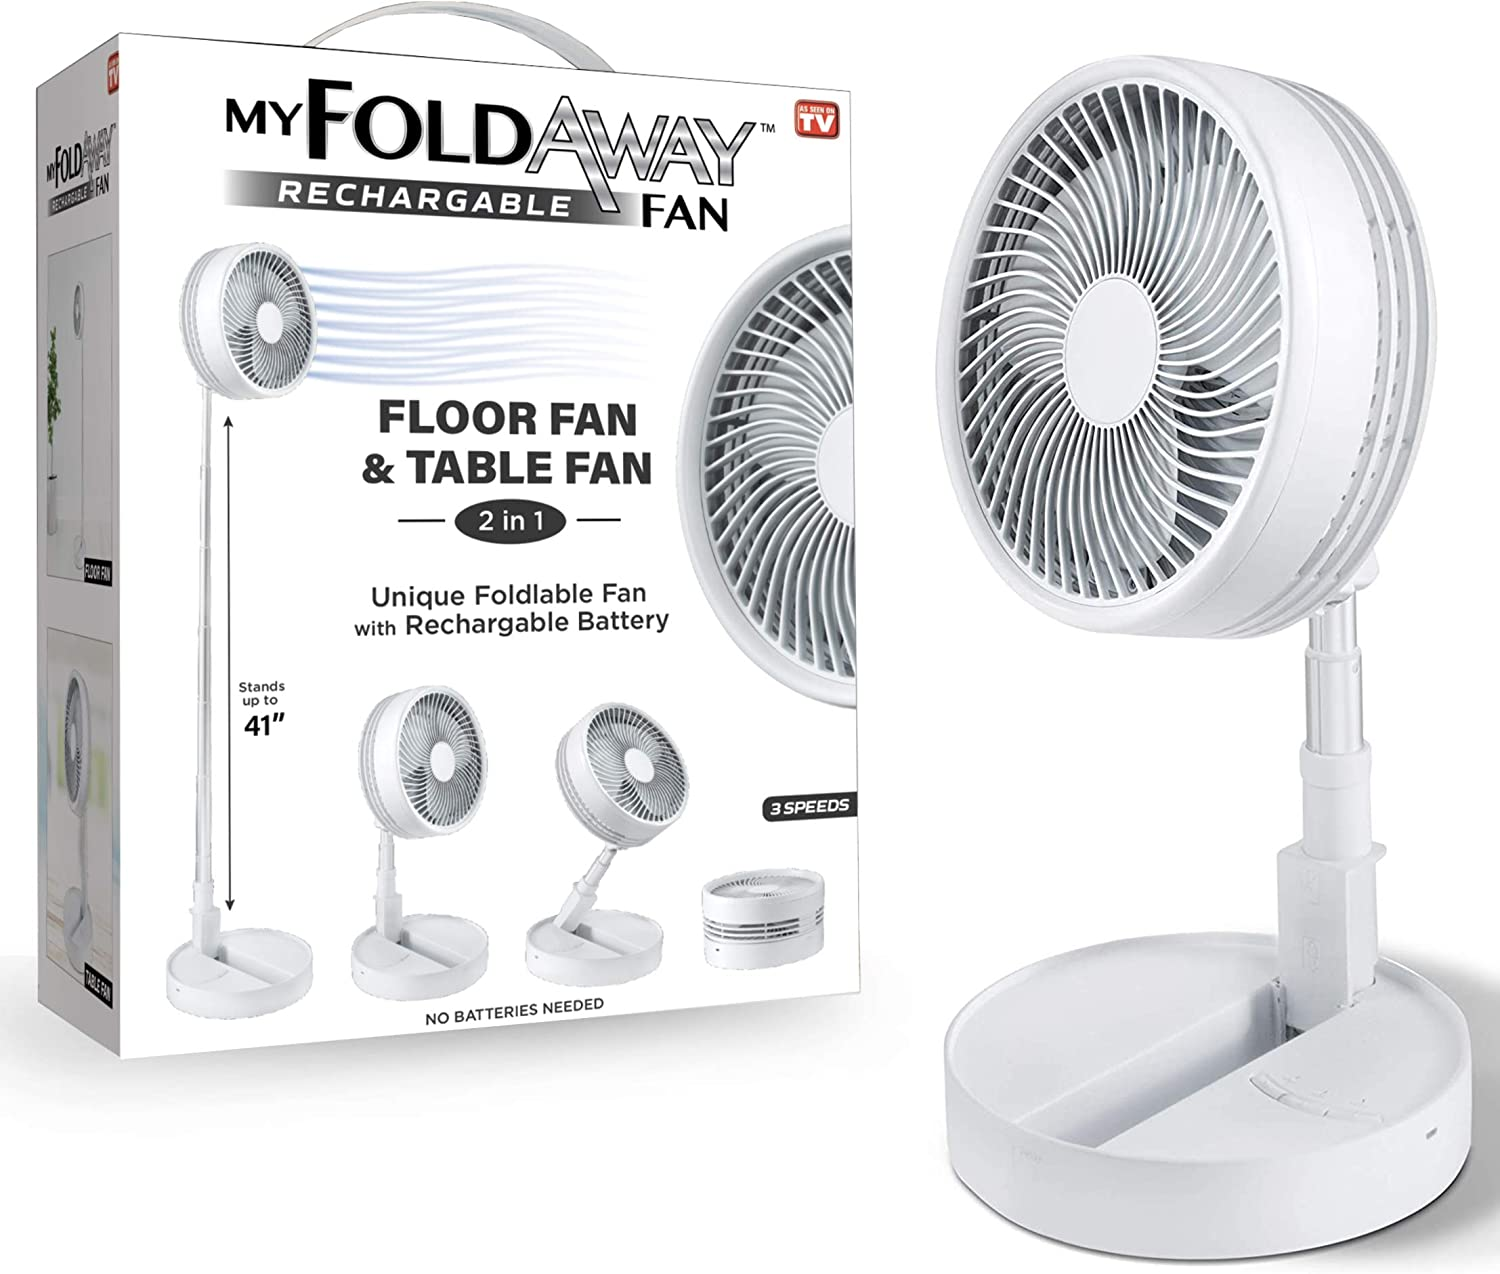 MY FOLDAWAY FAN by Bell+Howell Rechargeable Fan Ultra Lightweight Portable Compact Extendable to 4 Feet High with 3 Speed Modes As Seen On TV